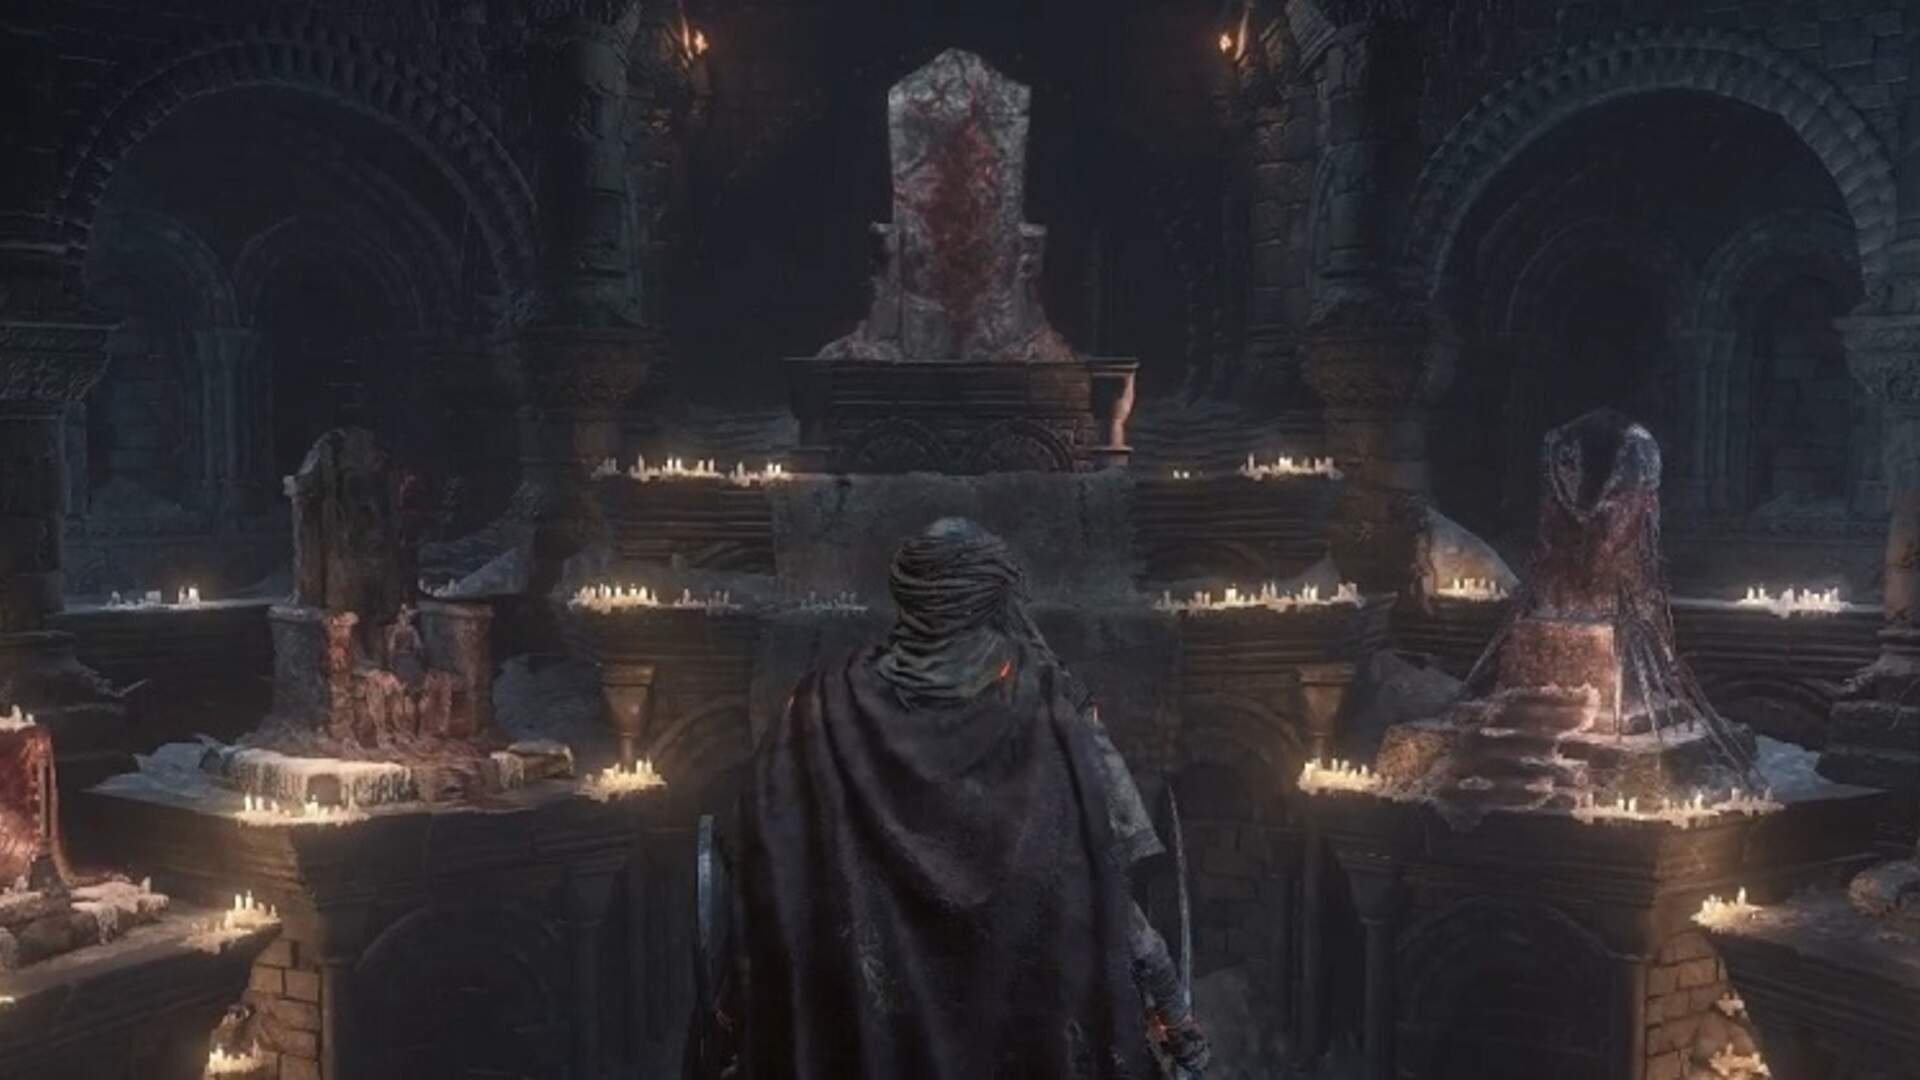 Dark Souls 3: Firelink Shrine - Fire Keeper, Shrine Handmaid